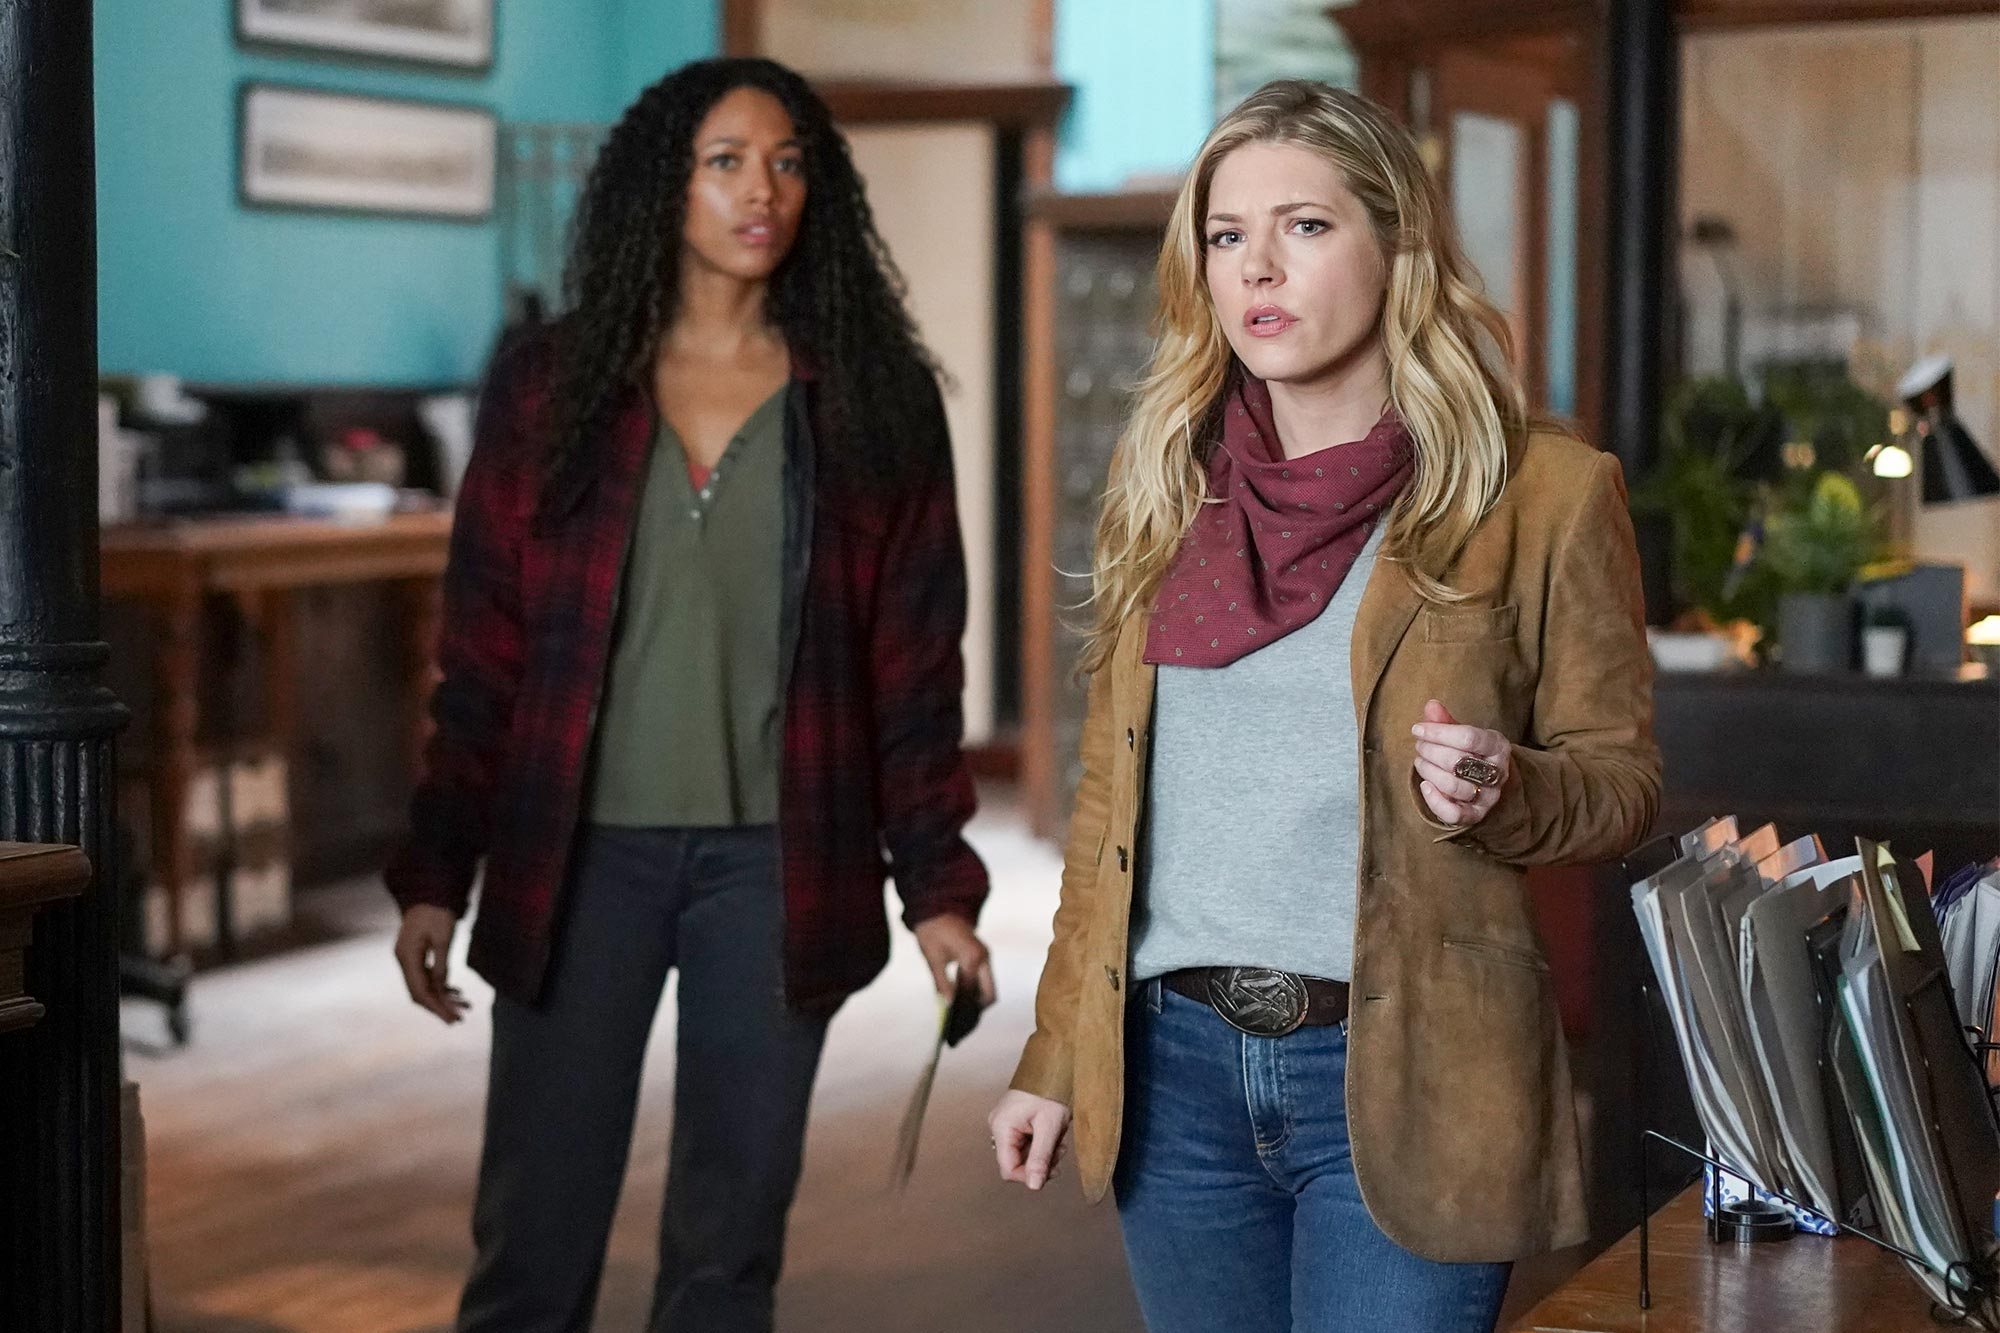 Media outlets are reporting ABC have renewed drama series Big Sky for a second season.